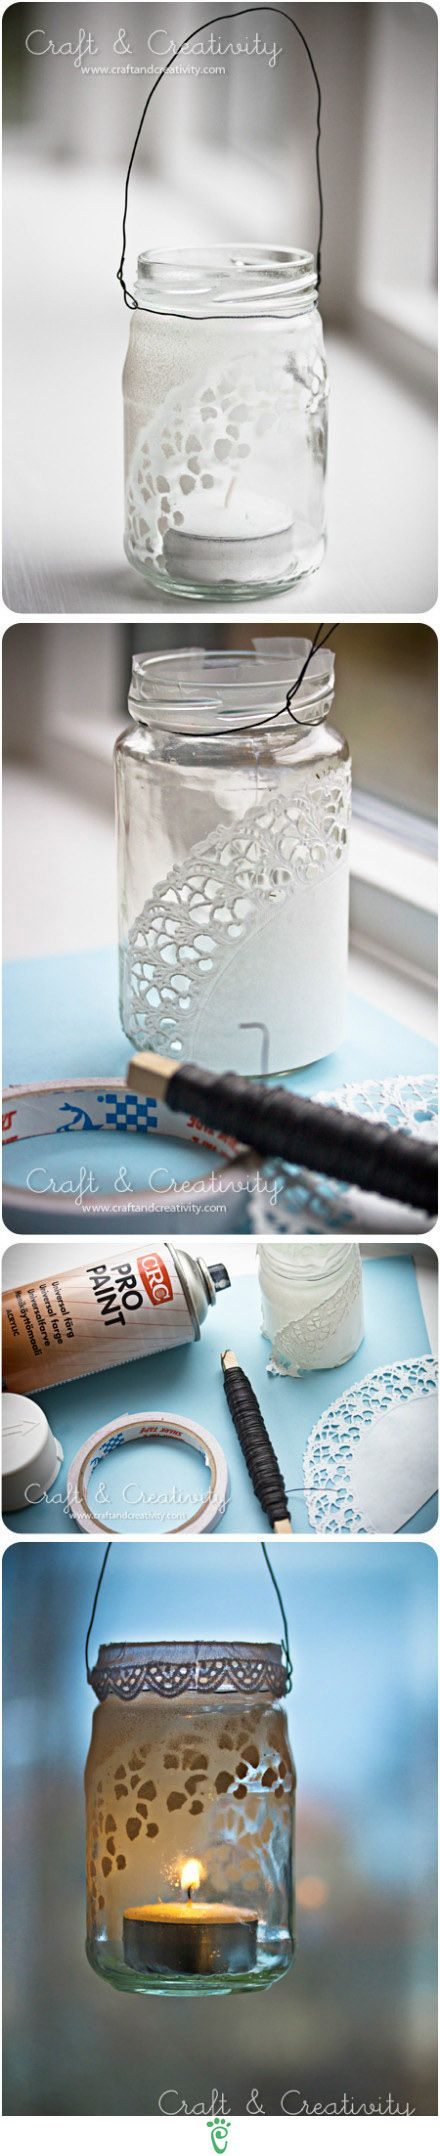 Mason Jar + Doilies to create lacy candle holders.  Amy would love these